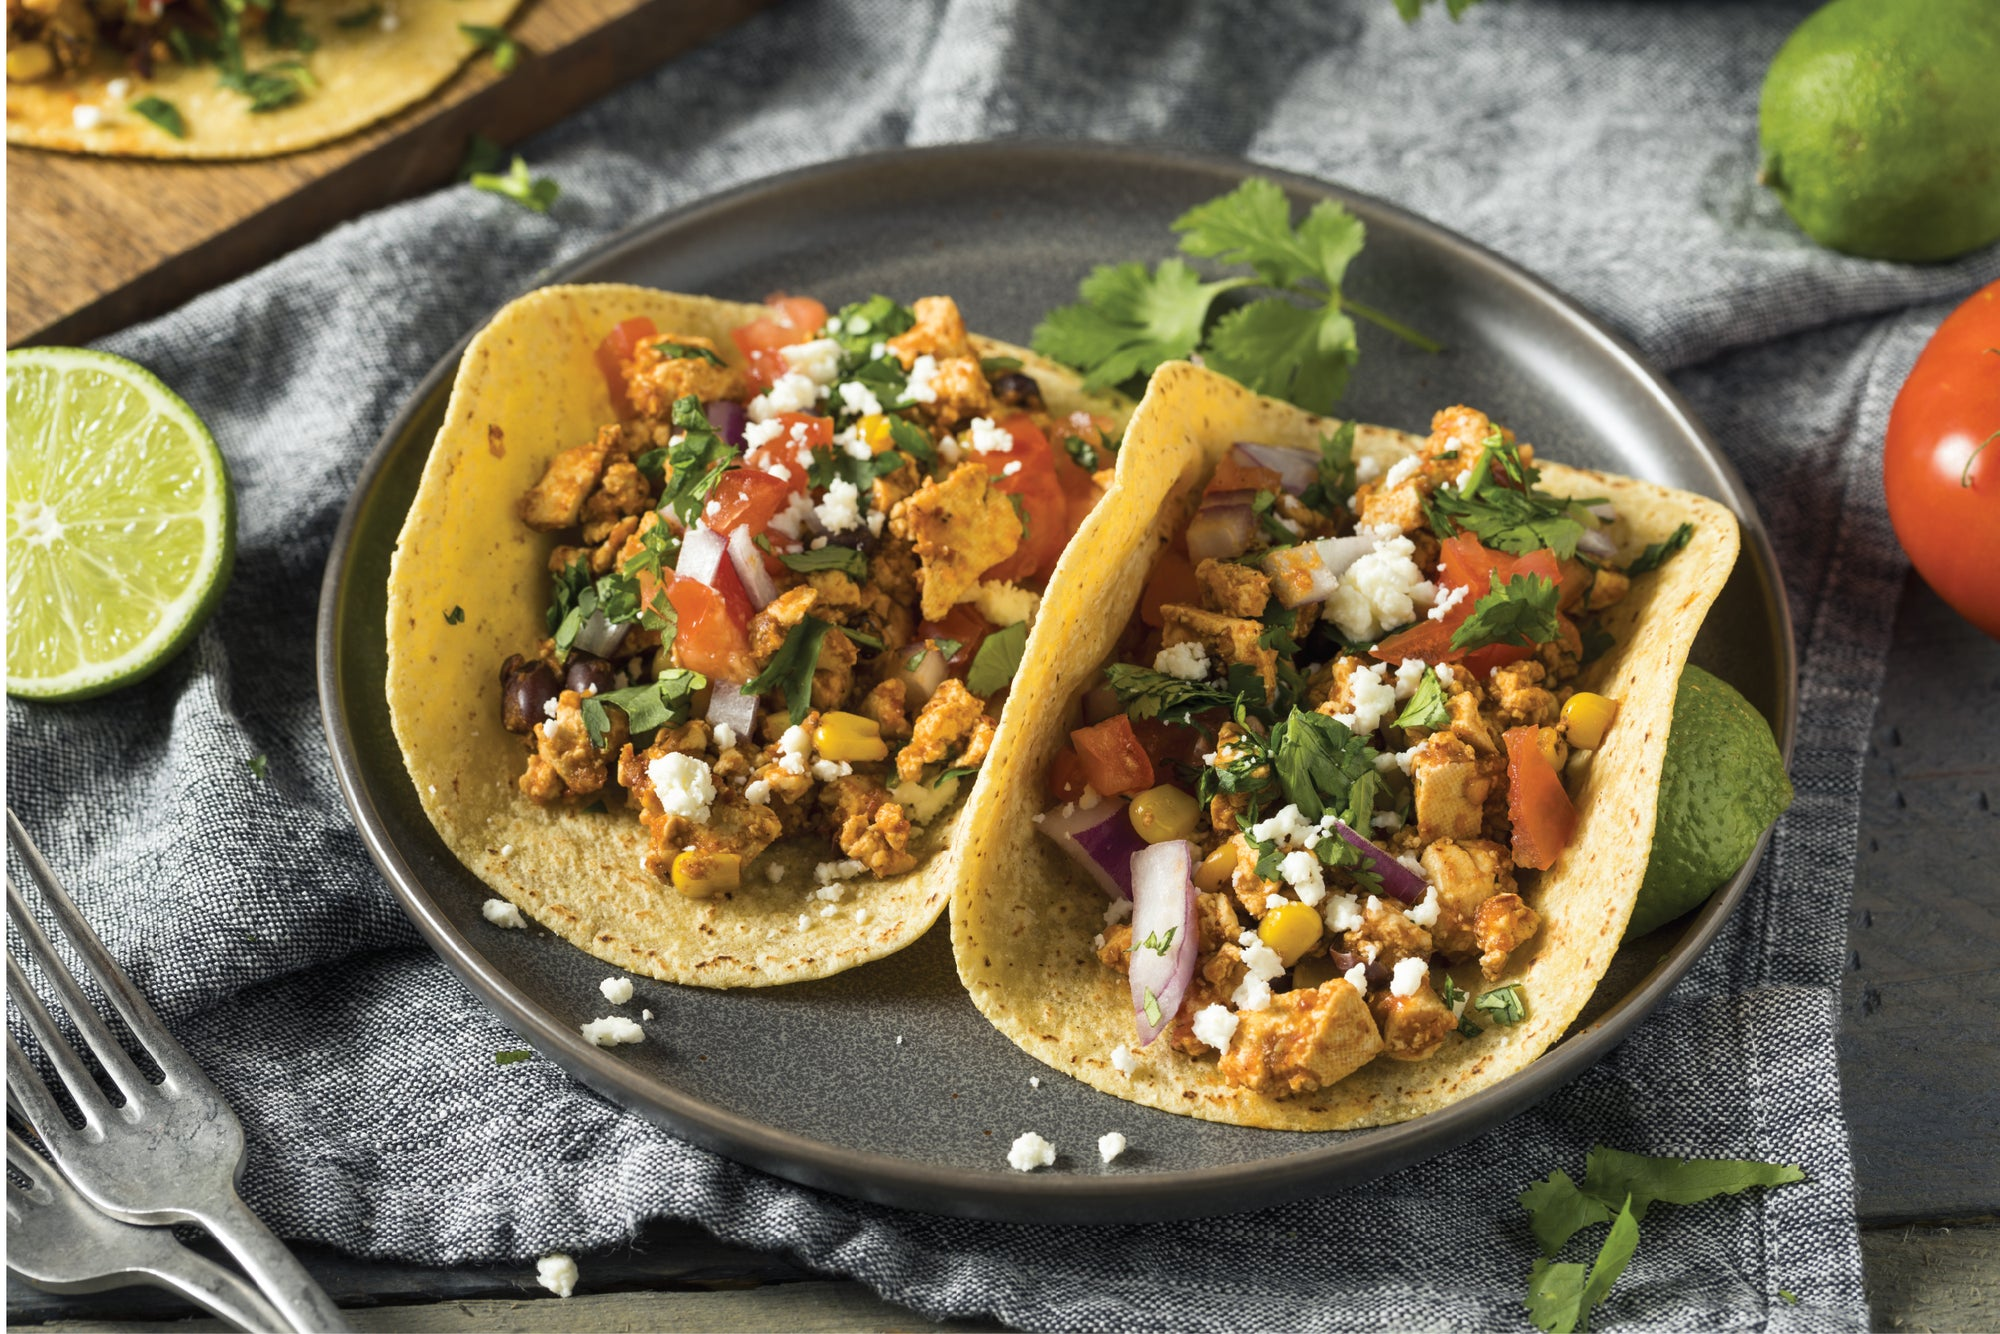 Healthy lunch idea that actually fills you up: Scrambled tofu tacos